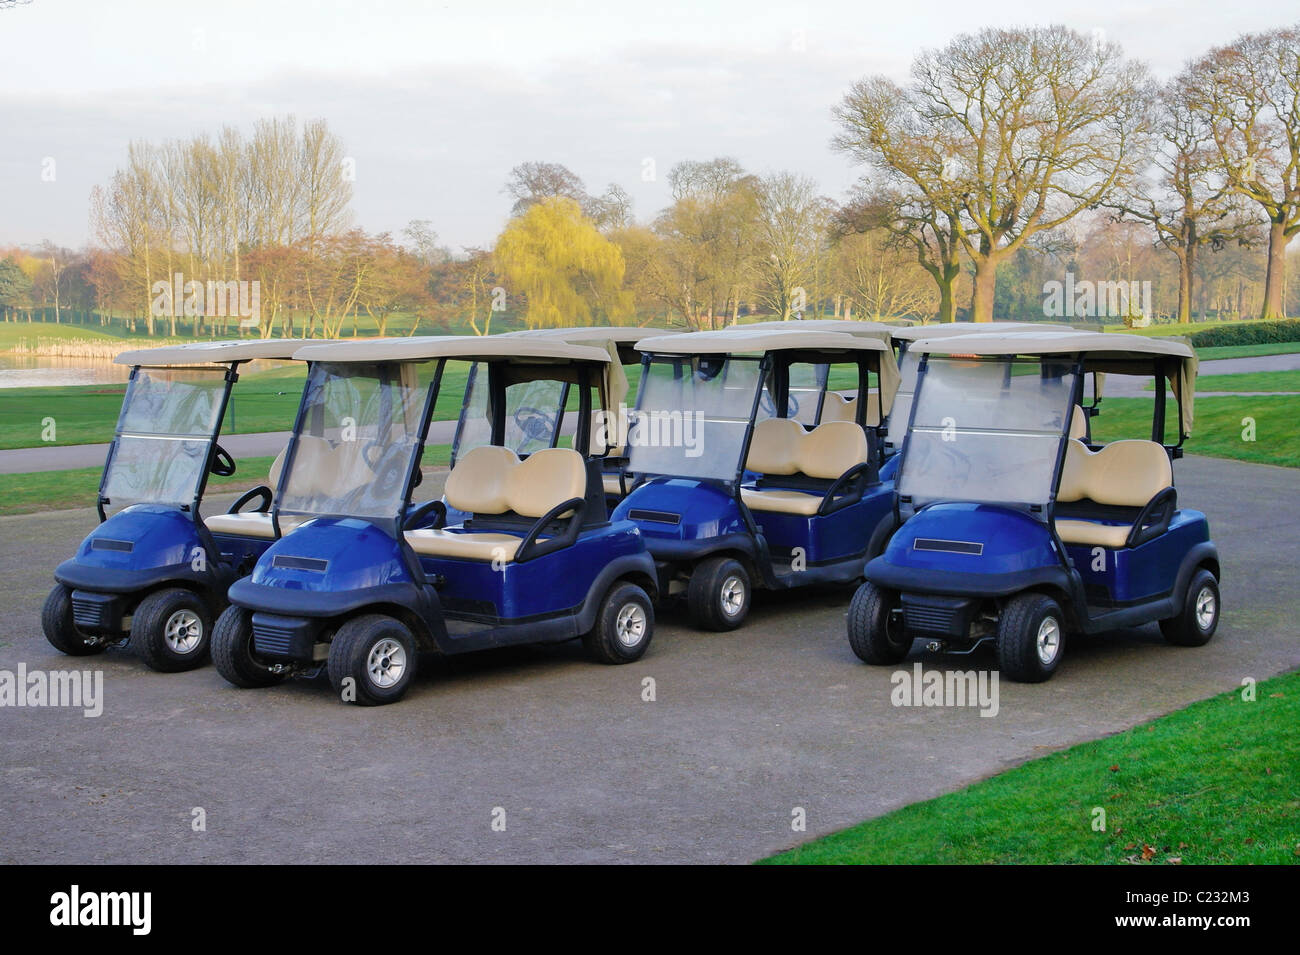 Photo of golf buggies parked up in the morning outside the club house. - Stock Image